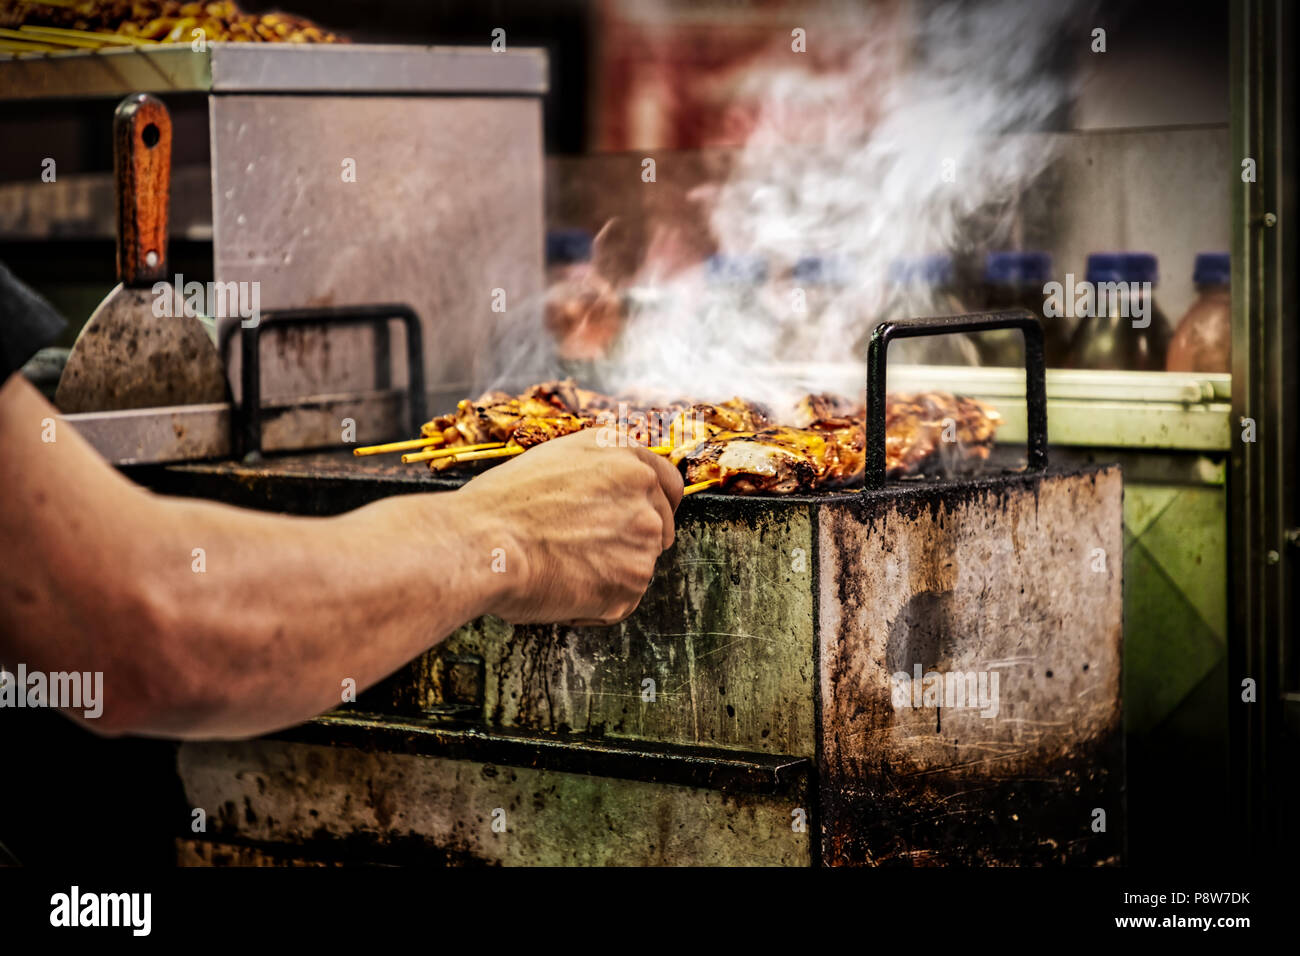 A cook at a food stand in New York City with kebabs on skewers. - Stock Image